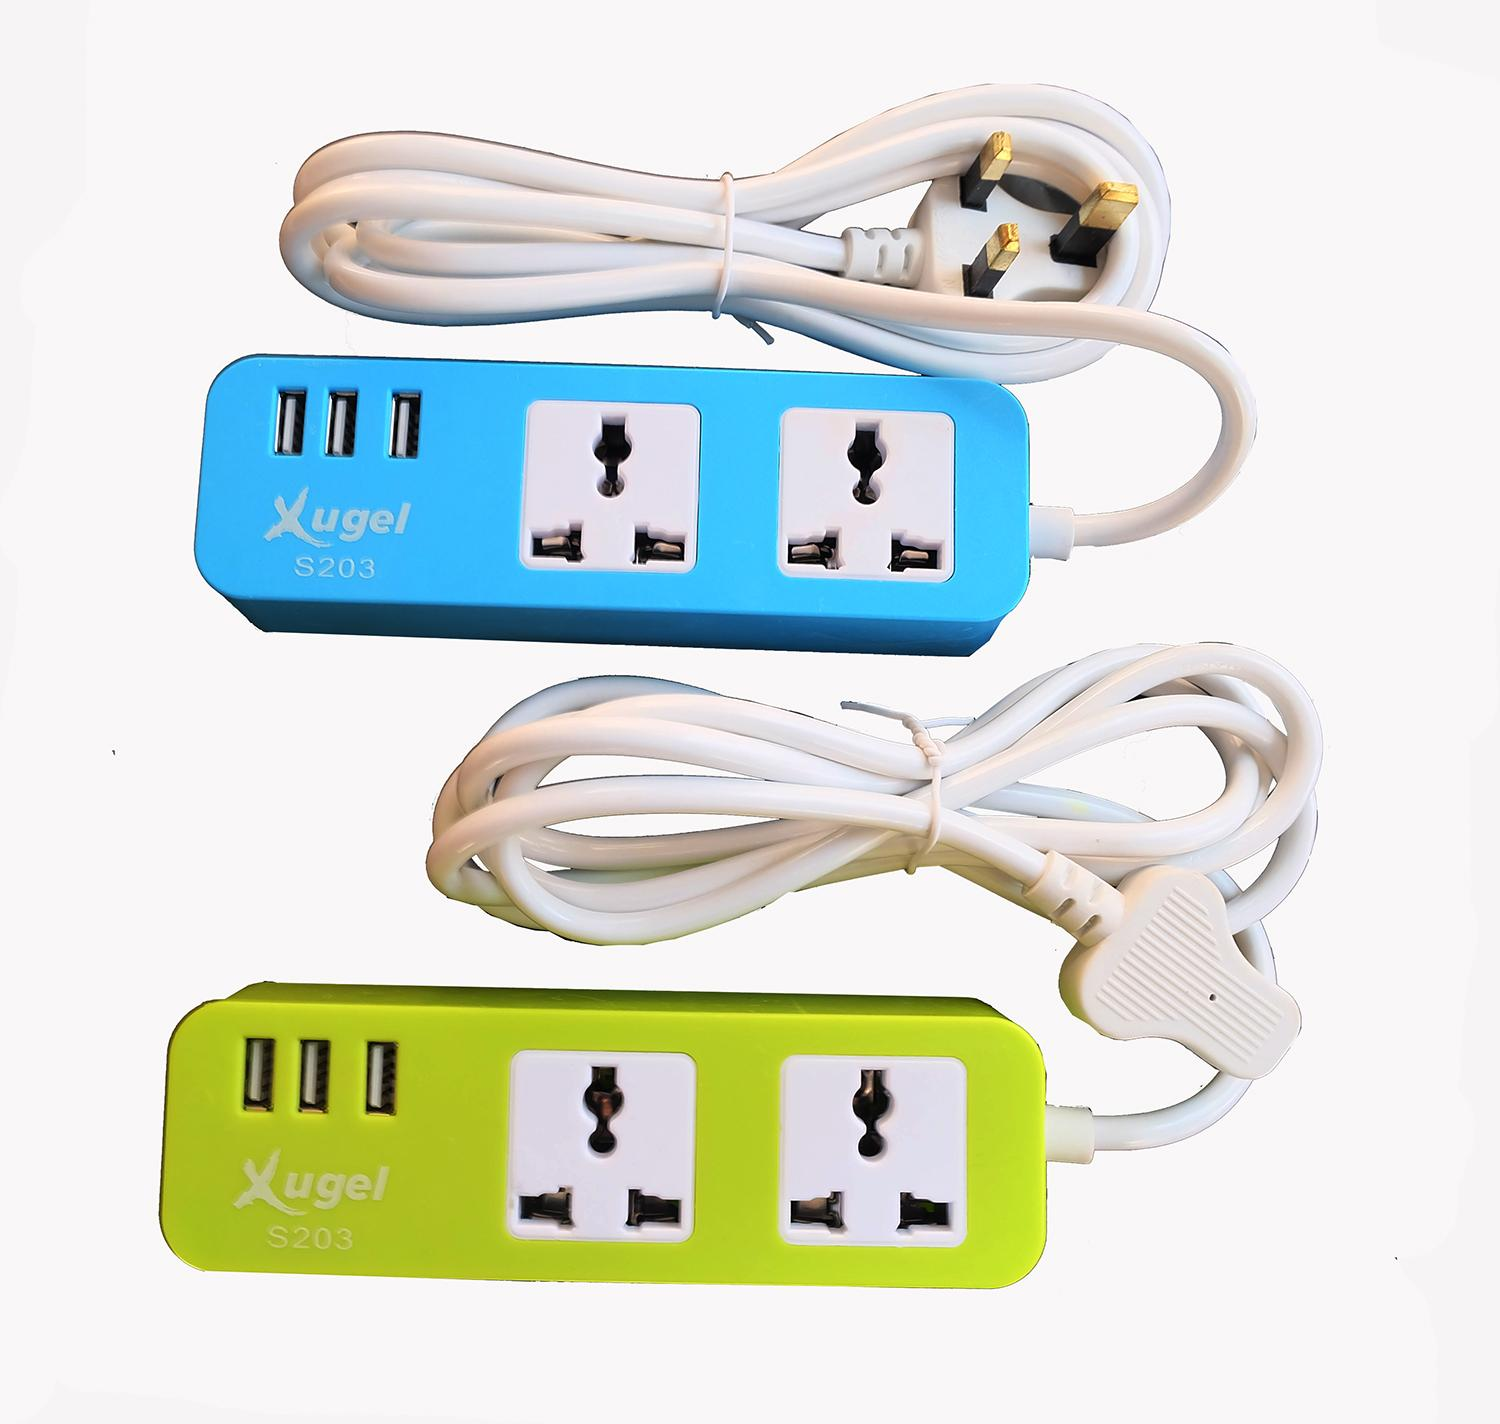 Buy High Quality Cables Leads Adapters Wiring An Outdoor Plug Socket Xugel Usb Power Box 2 Meter Cable Extension 3 Charger Port And